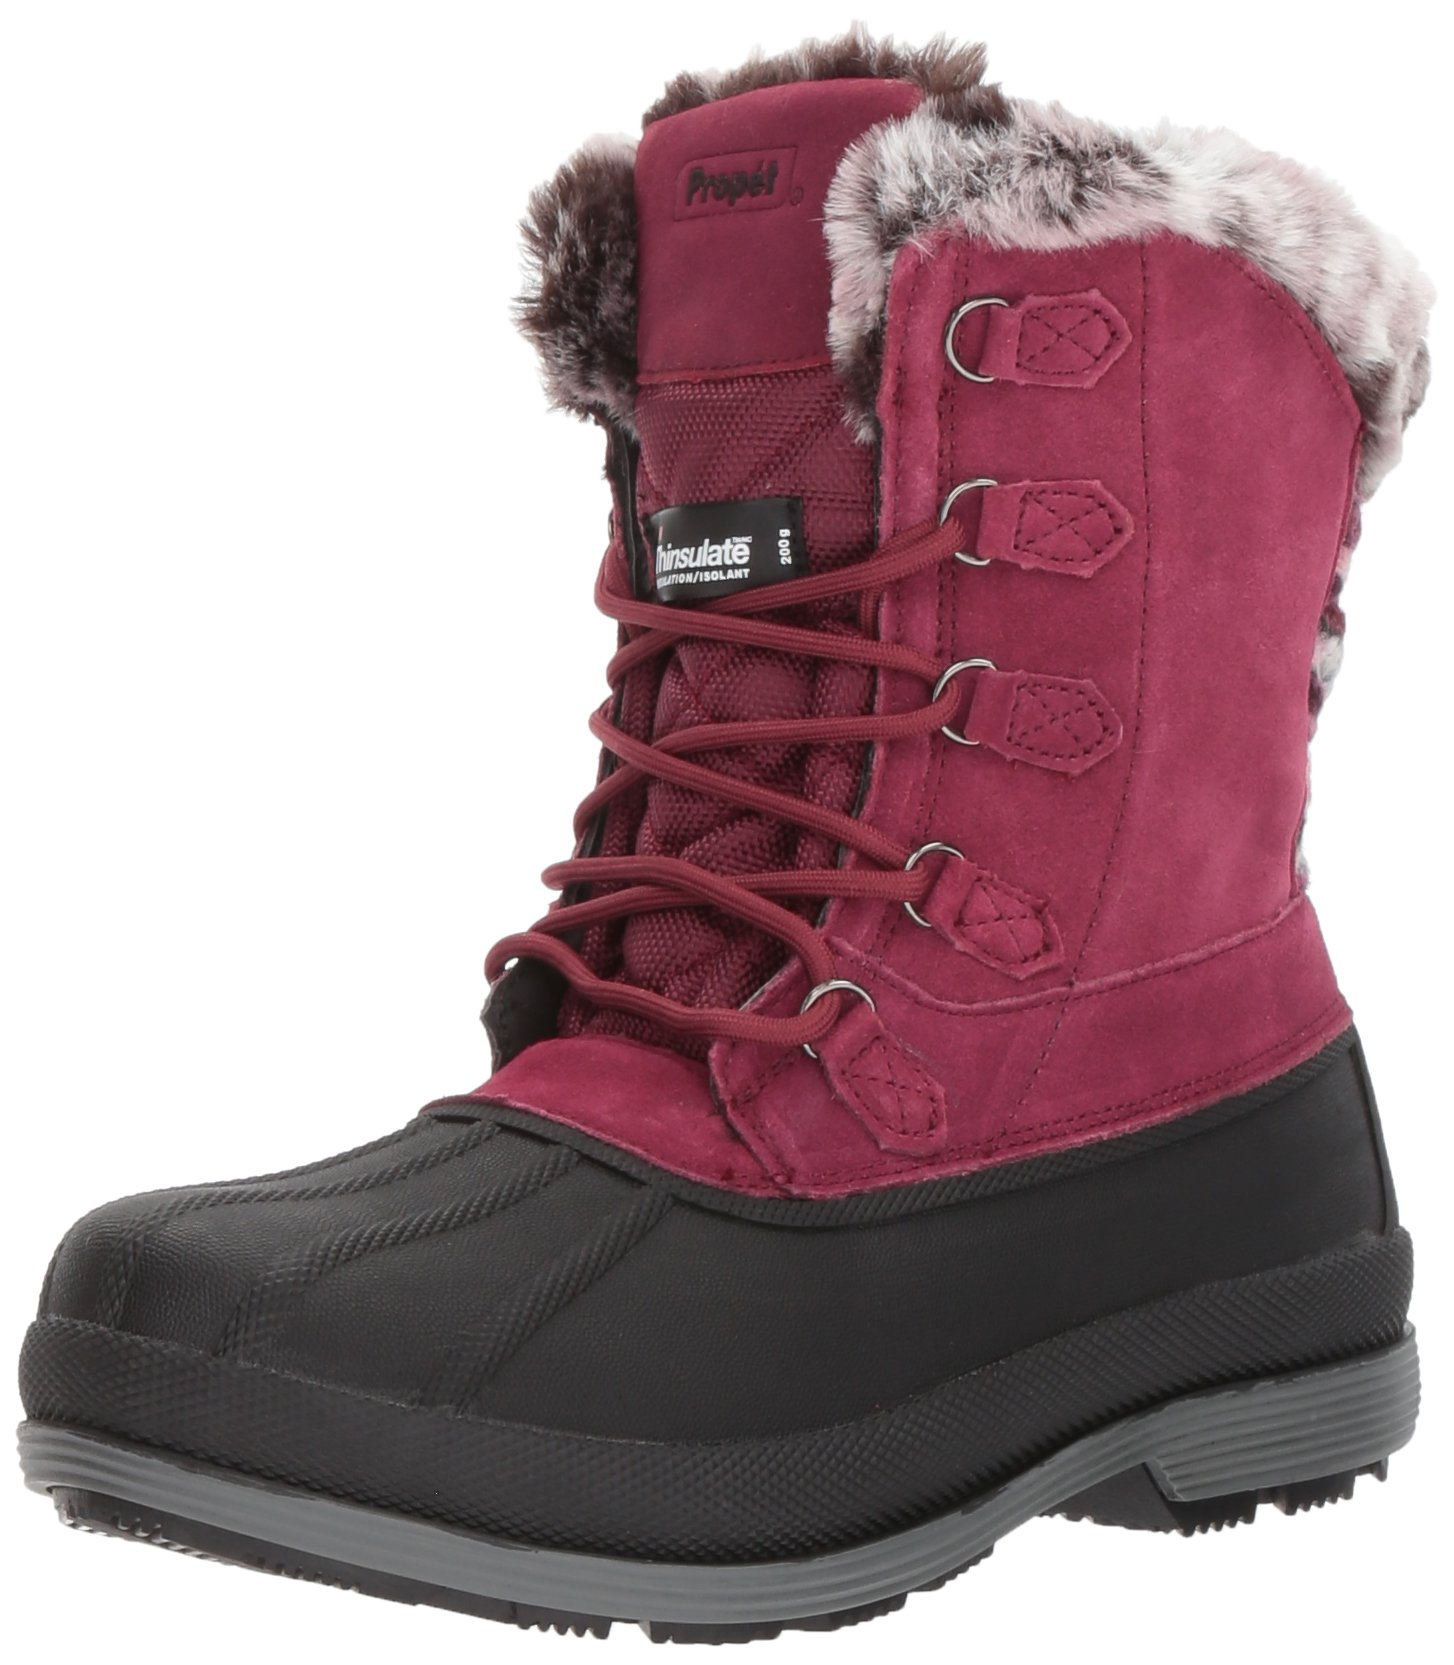 Propet Women's Lumi Tall Lace Snow Boot, Berry, 8 2E US